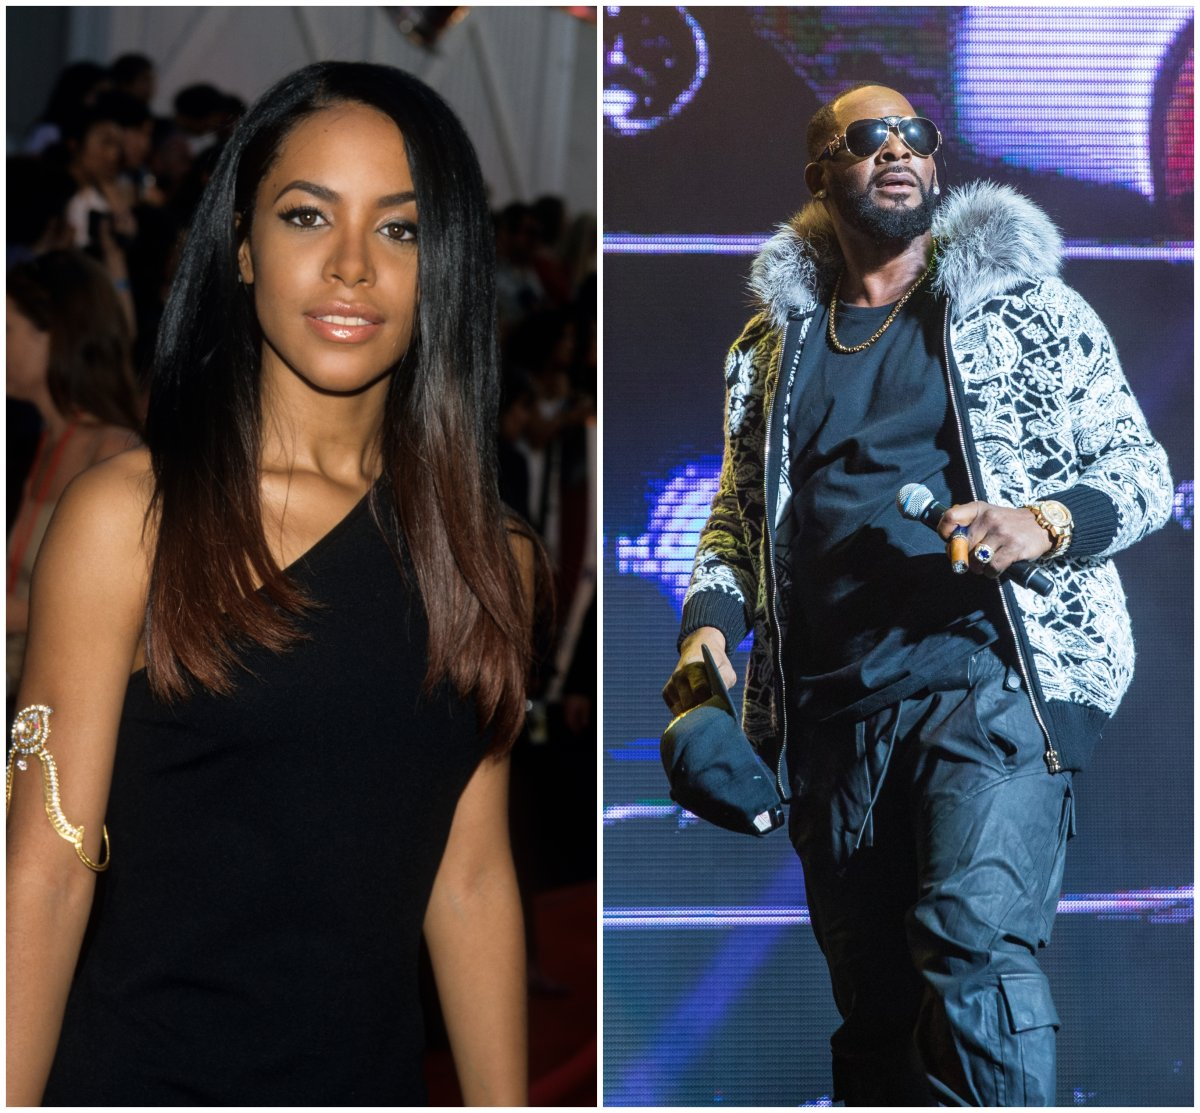 (L-R): Aaliyah and R. Kelly.